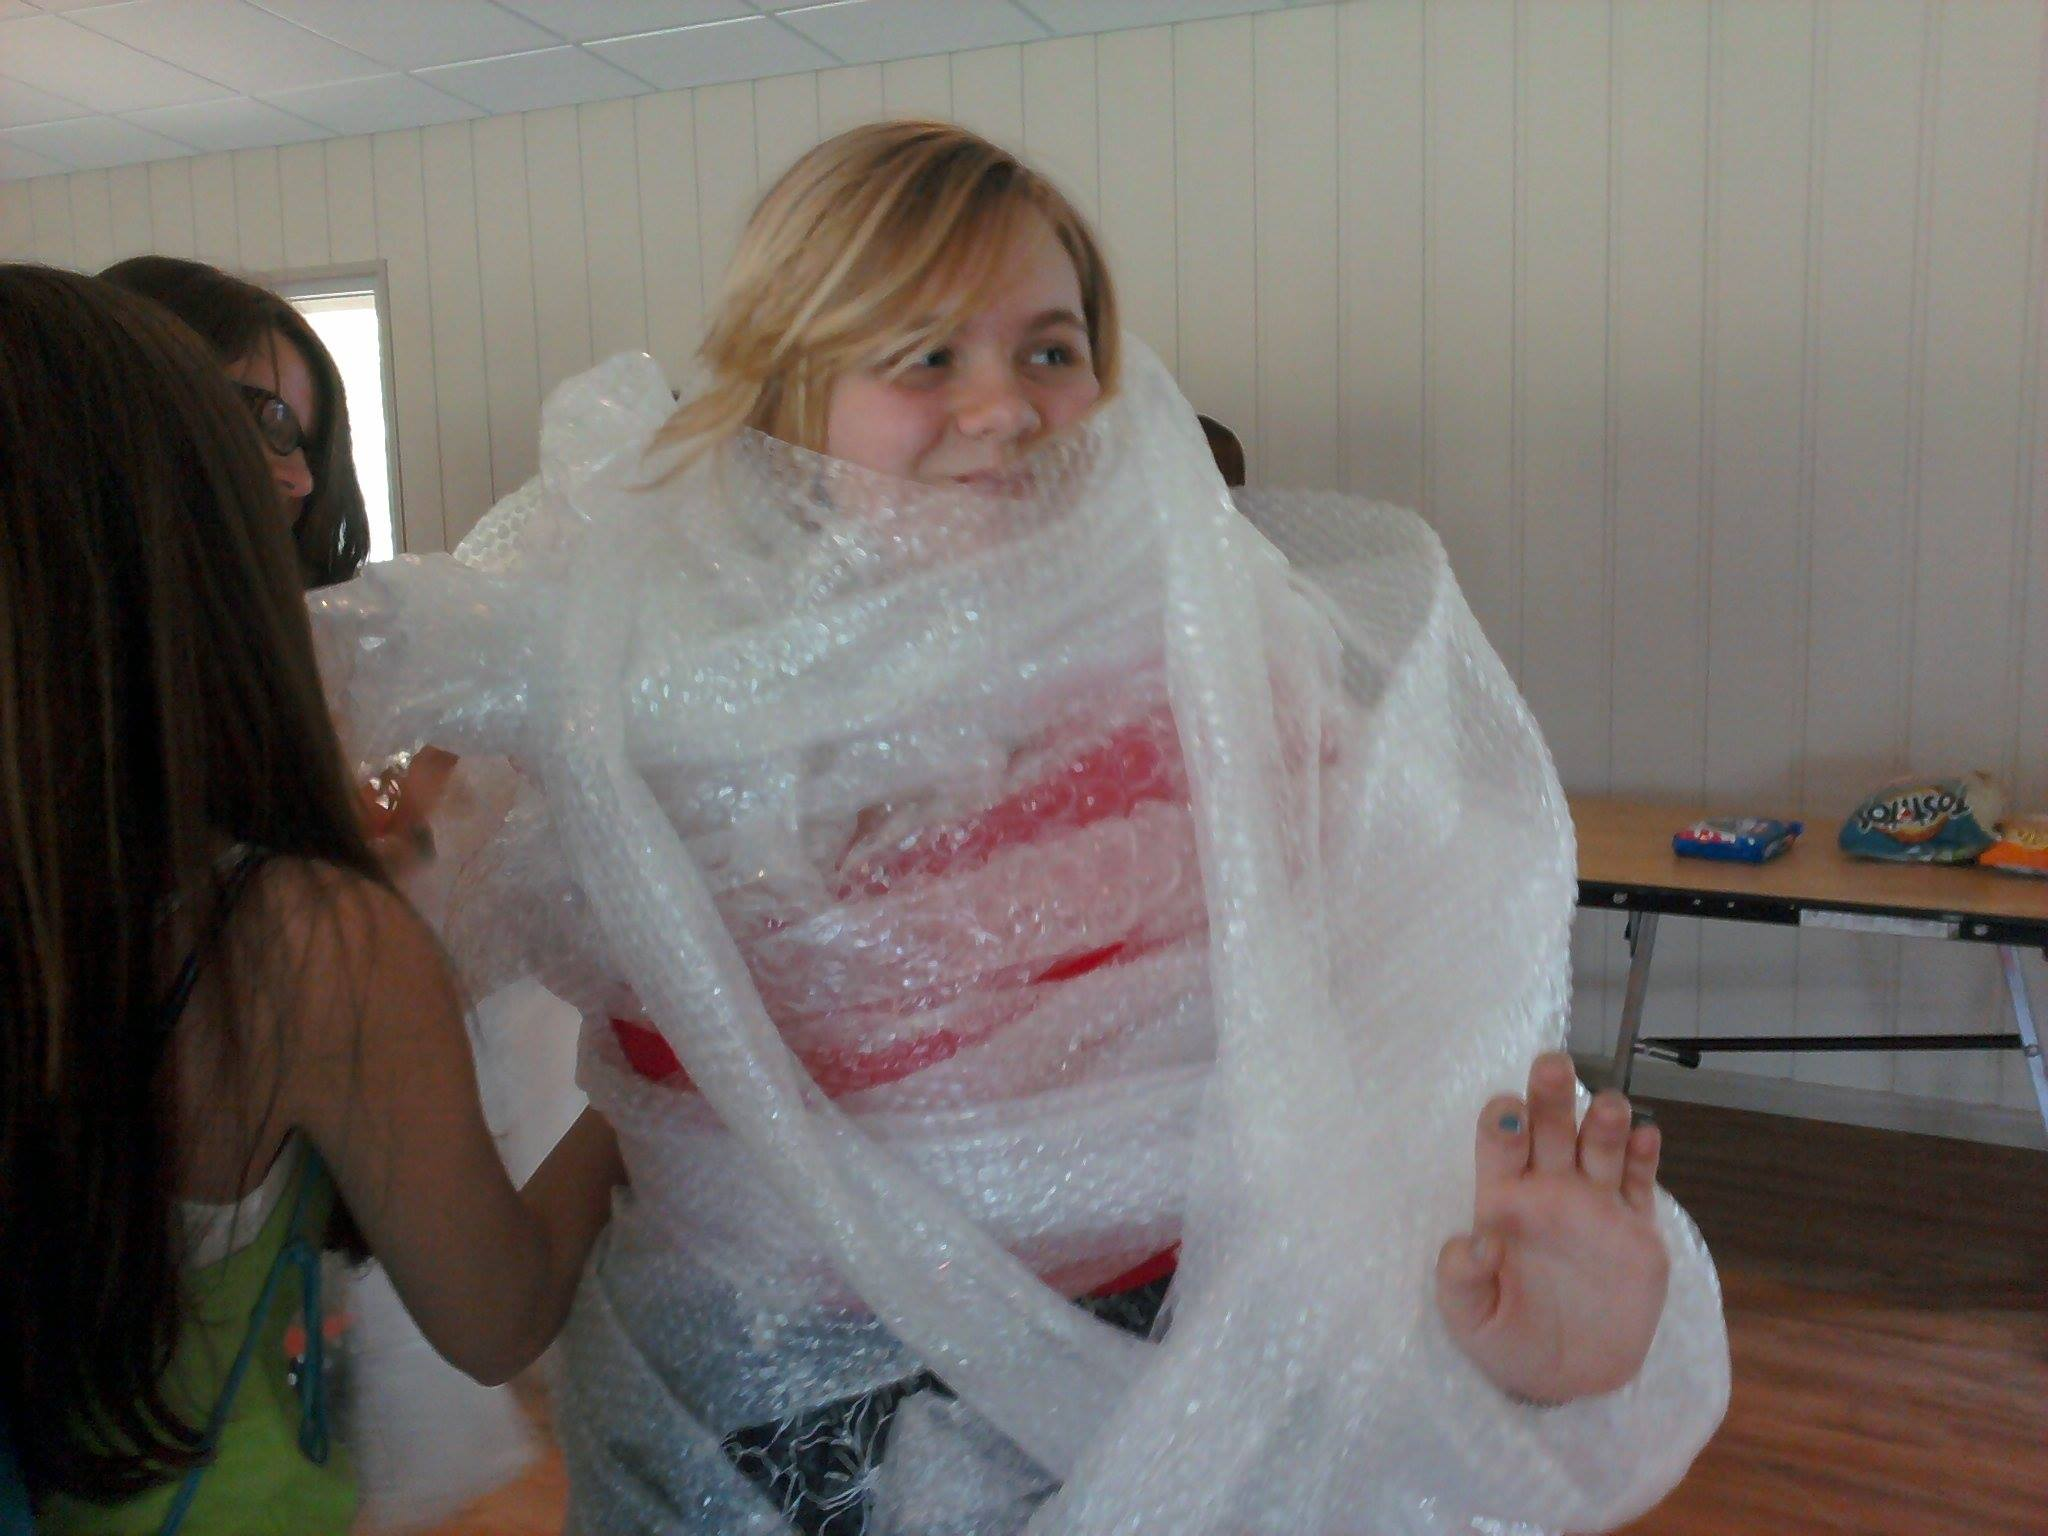 WeHaKee Camp for Girls Staff: Sarah wrapped in bubblewrap.